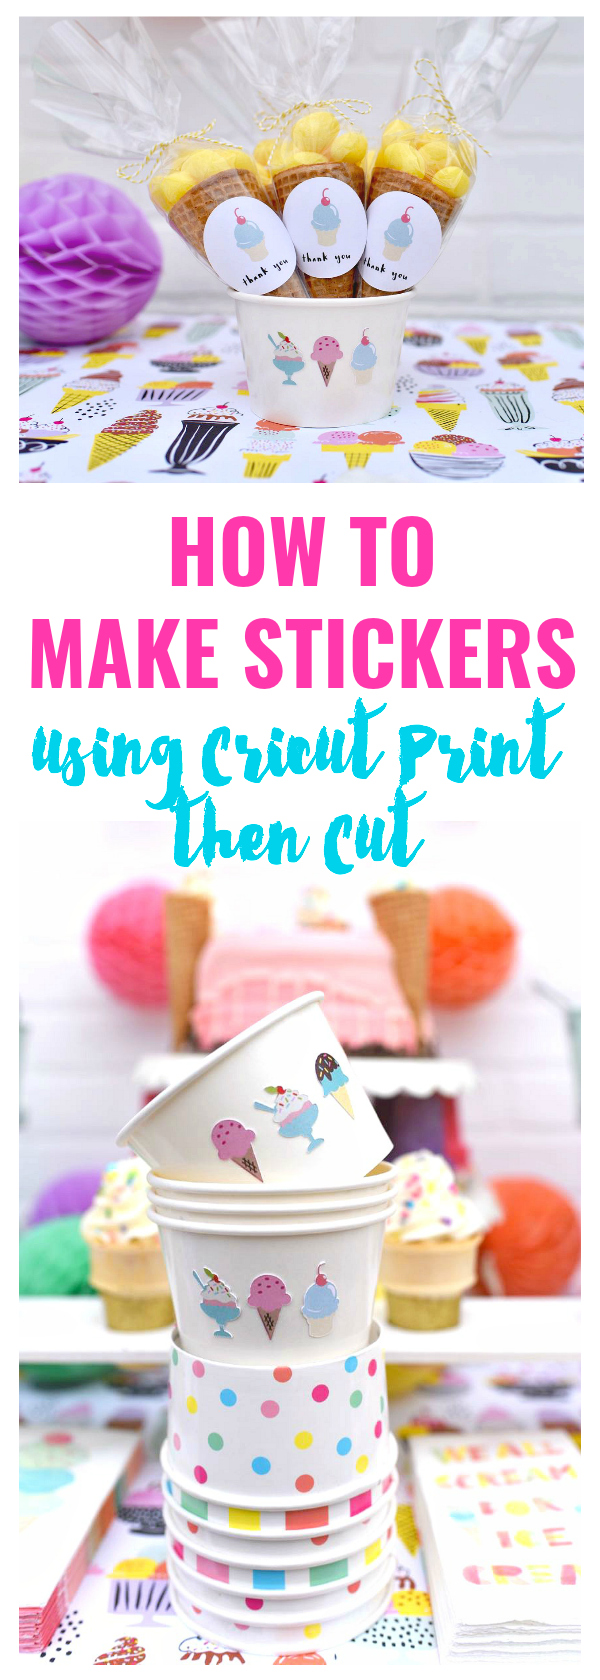 How to make stickers. Awesome clipart won